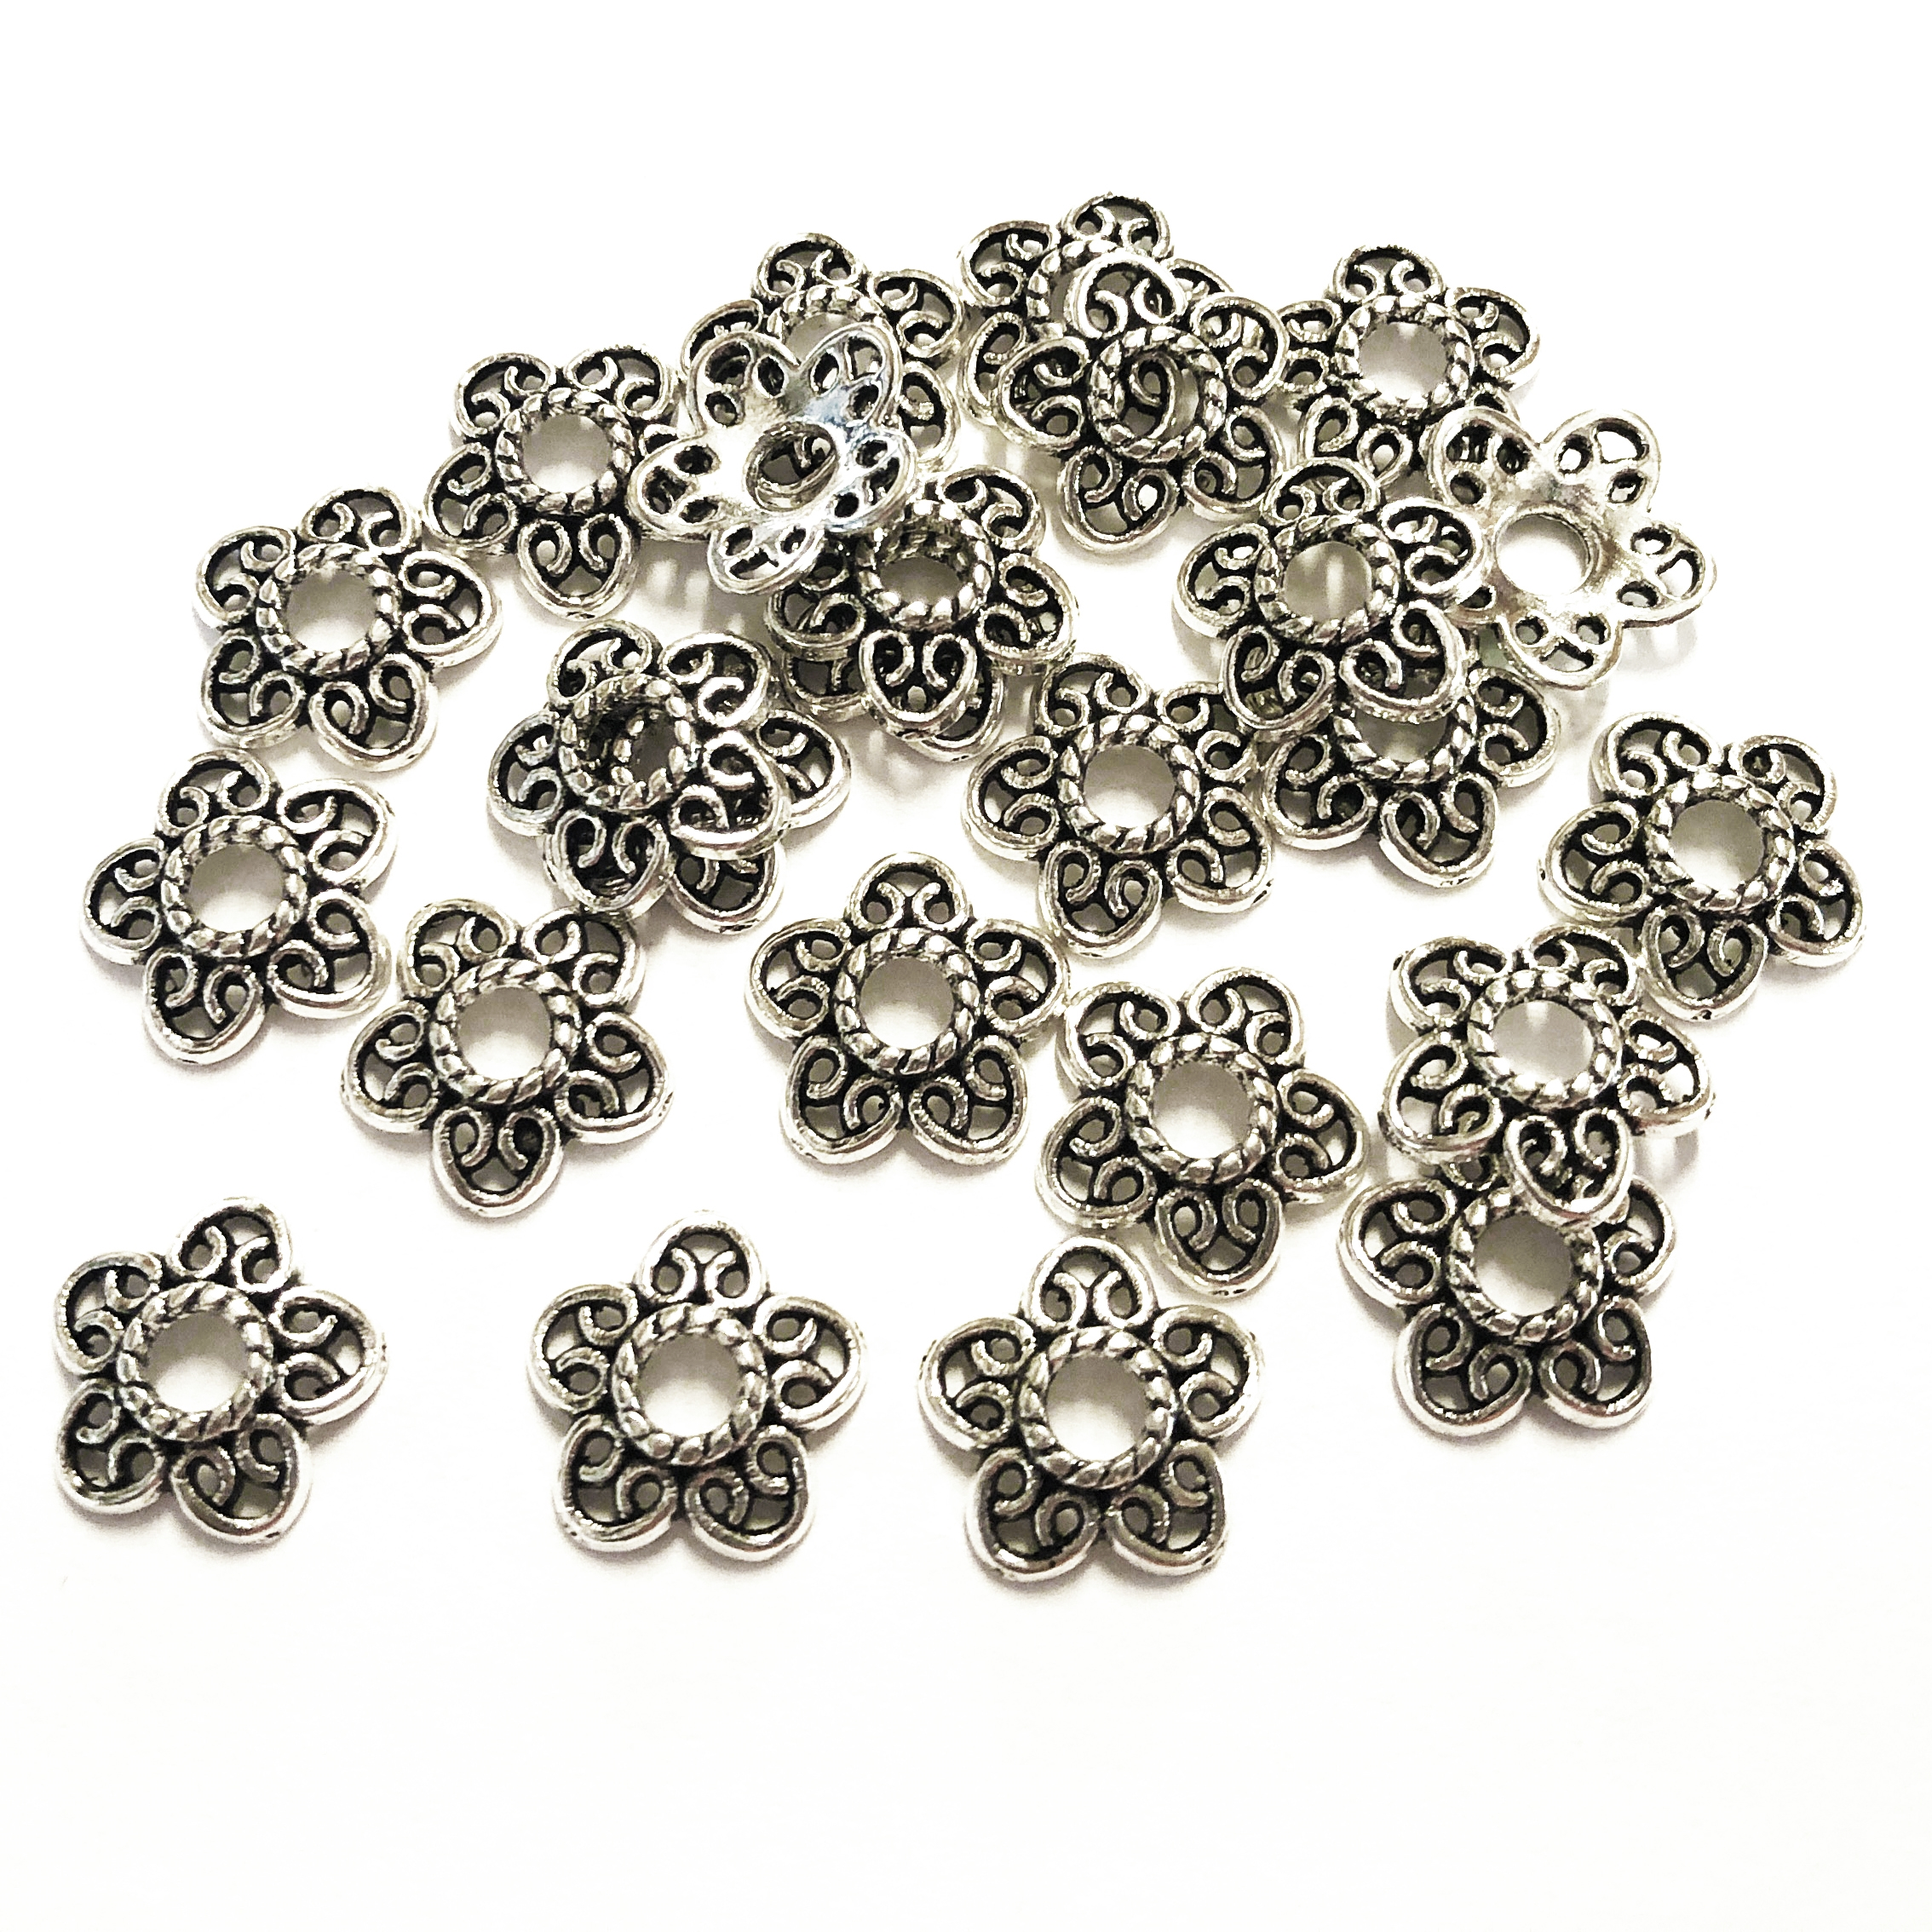 Floral bead cap, antique silver, bead cap, 12mm, 10 pieces, cap, bead, jewelry making, vintage supplies, jewelry supplies, caps, B'sue Boutiques, 09149, bead caps, flower